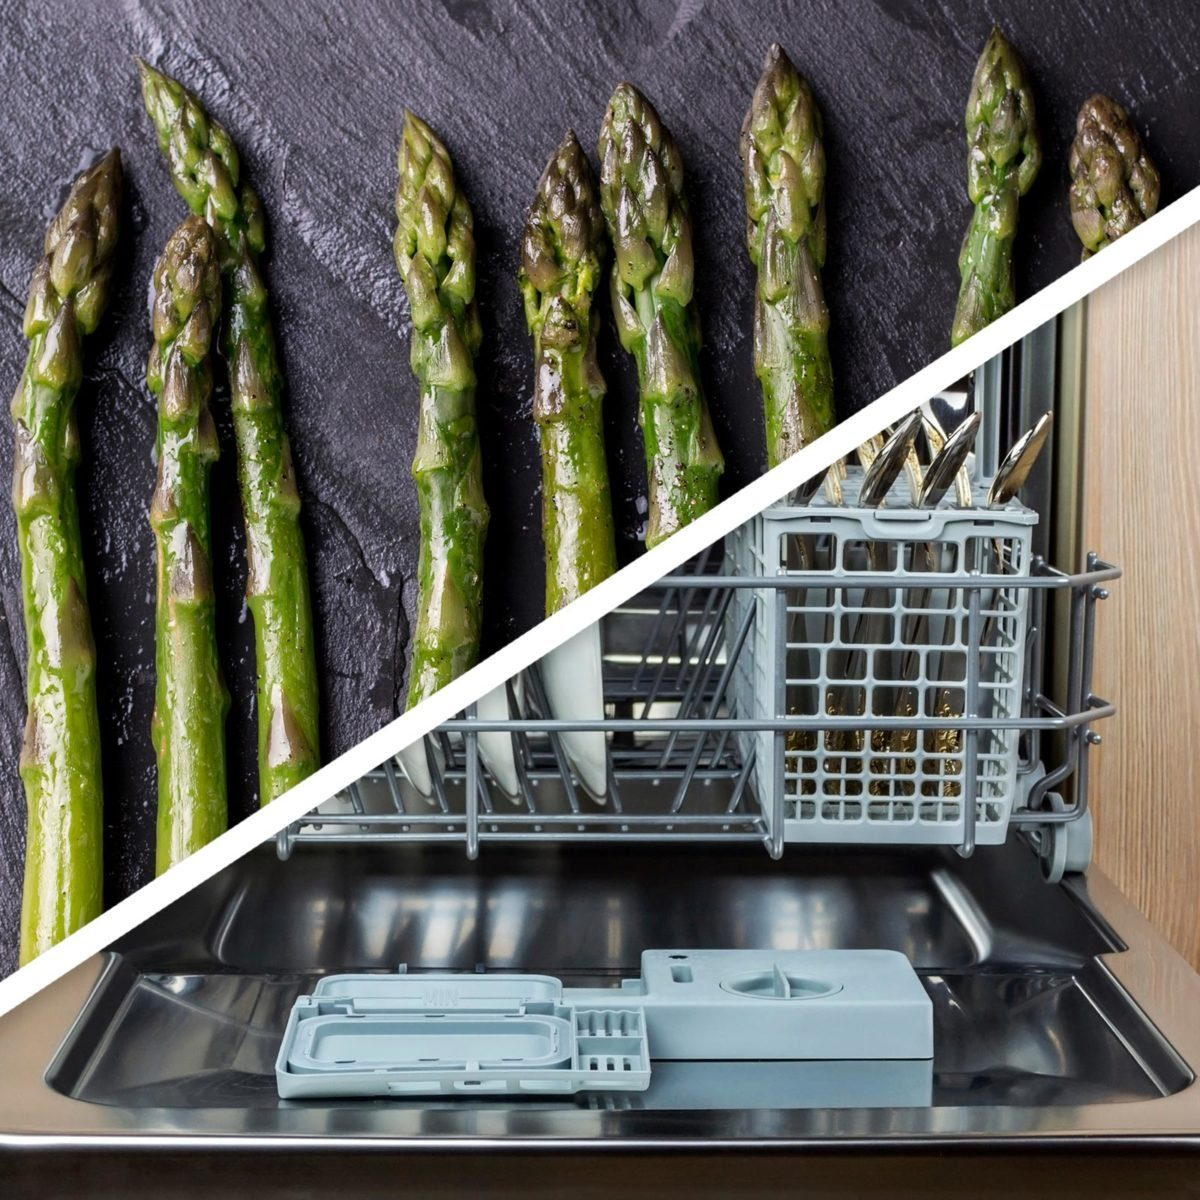 Steamed veggies and dishwasher